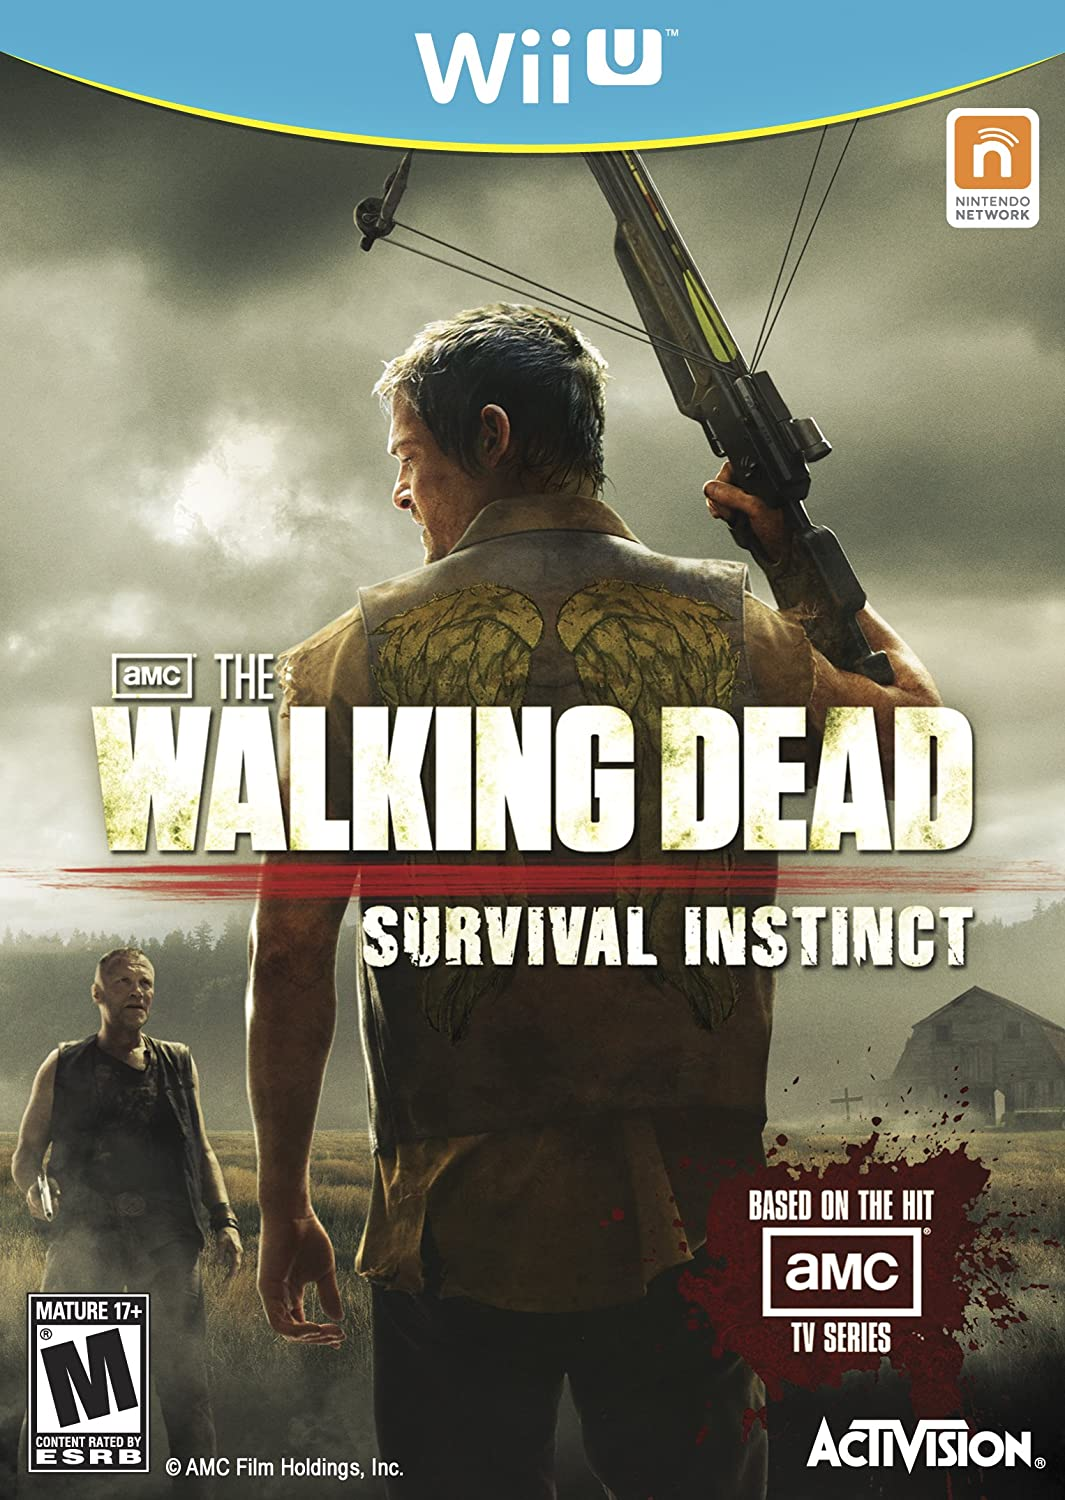 The Walking Dead: Survival Instinct - Nintendo Wii U